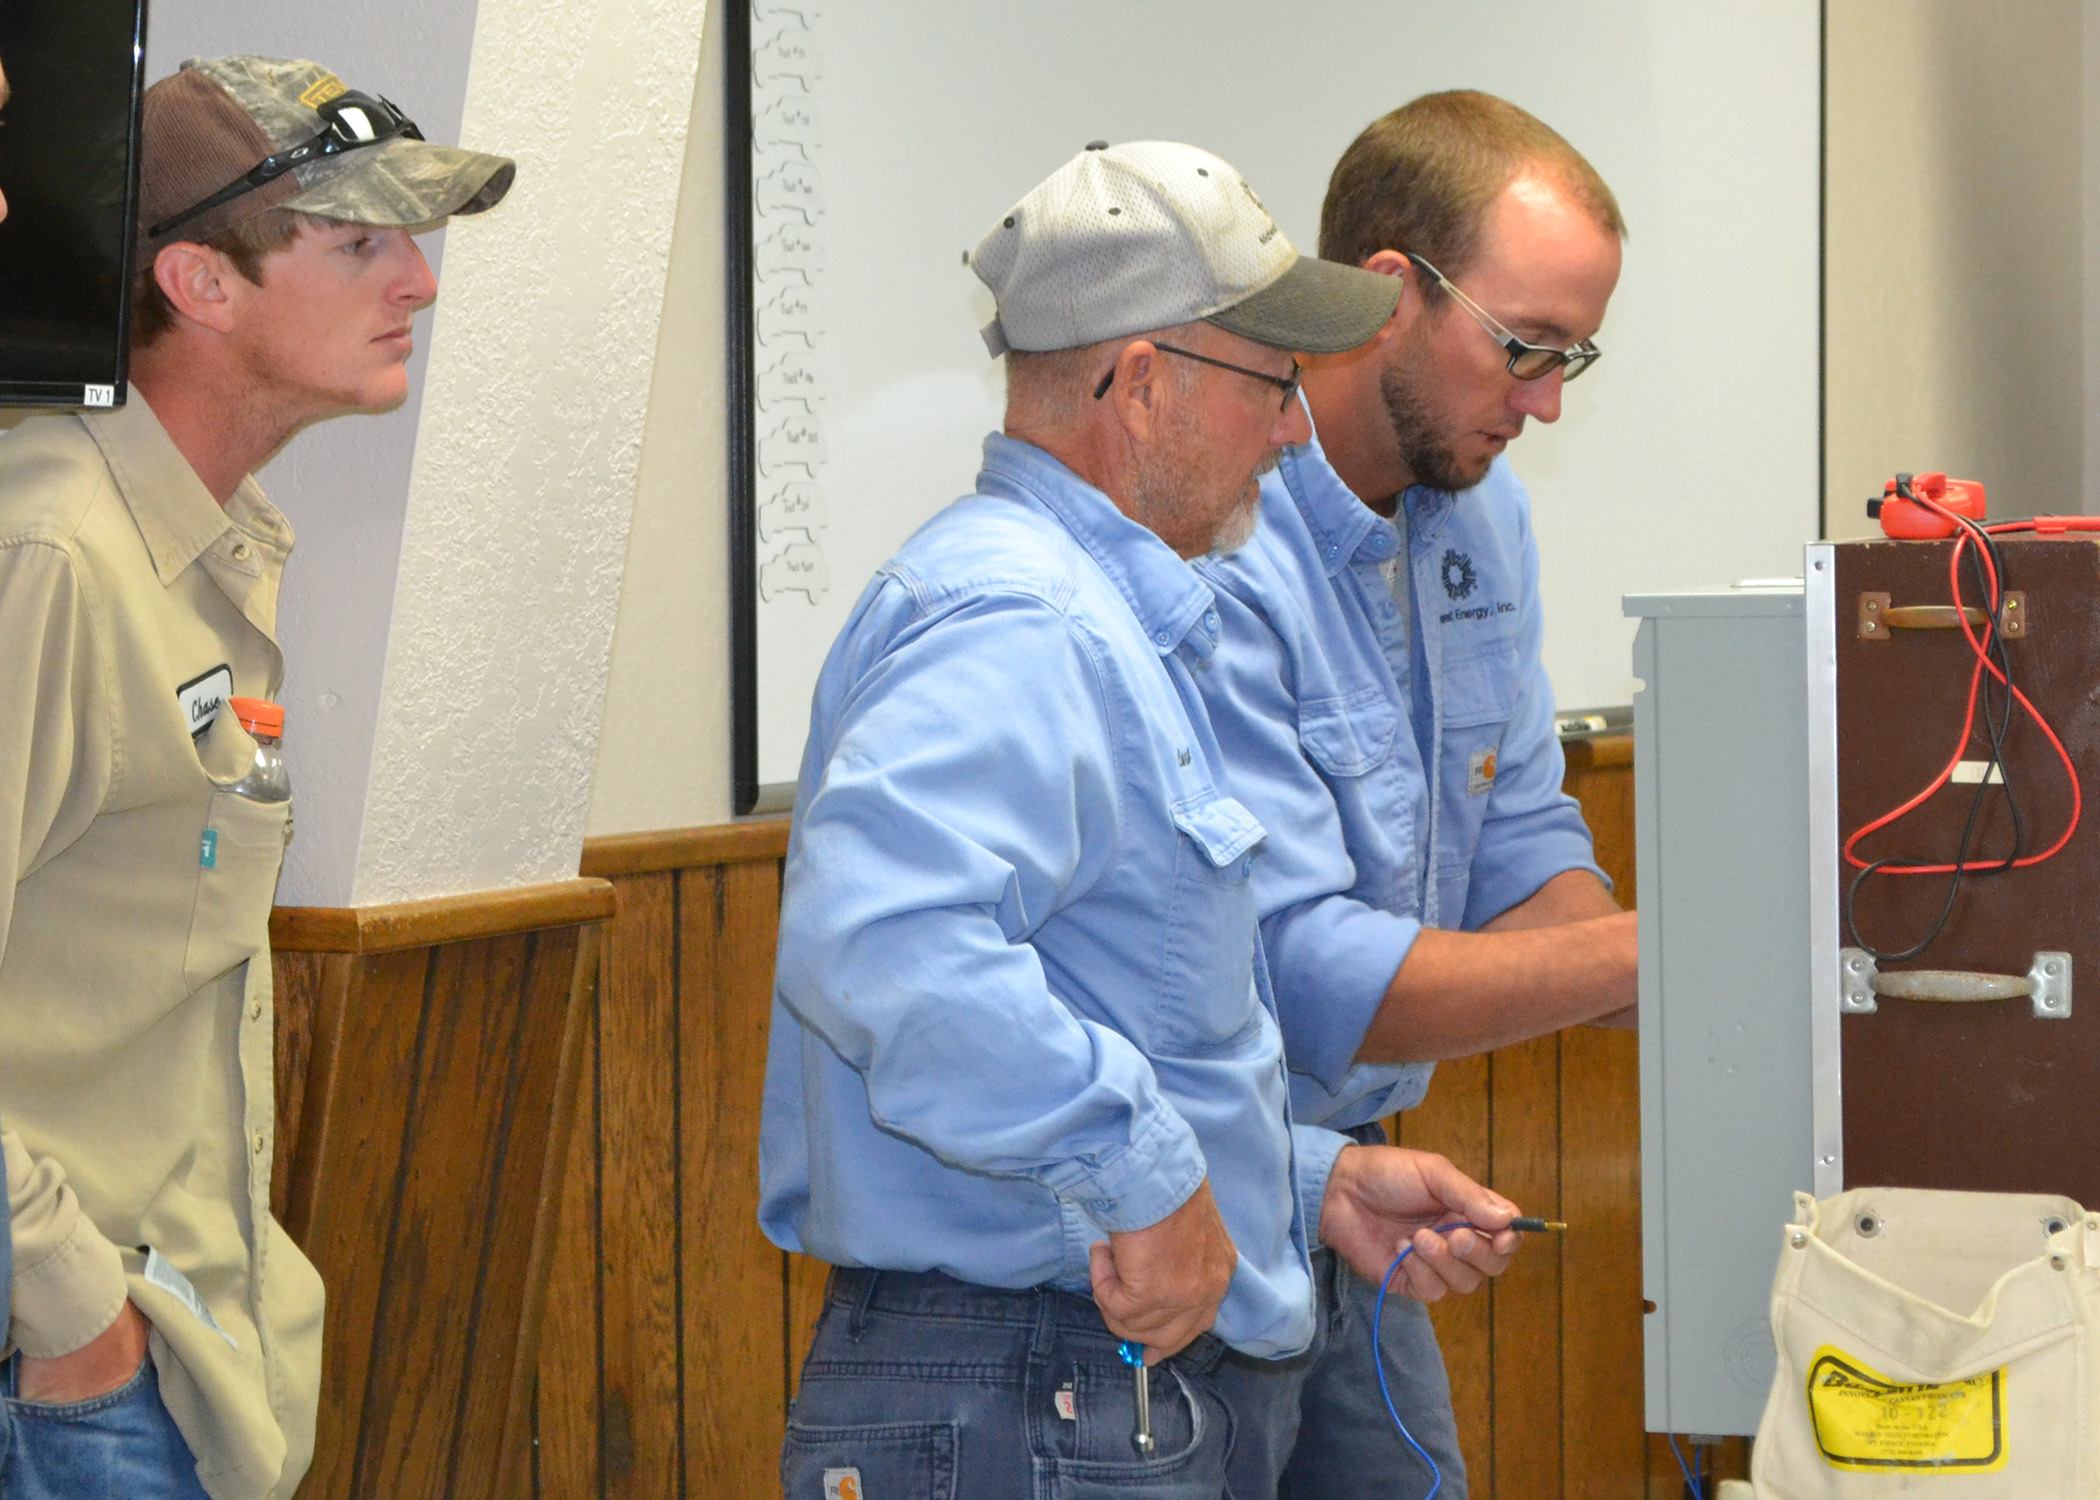 A picture of three linemen, one wearing a tan shirt and two wearing blue shirts, conducting a test on a meter can simulator during metering school.